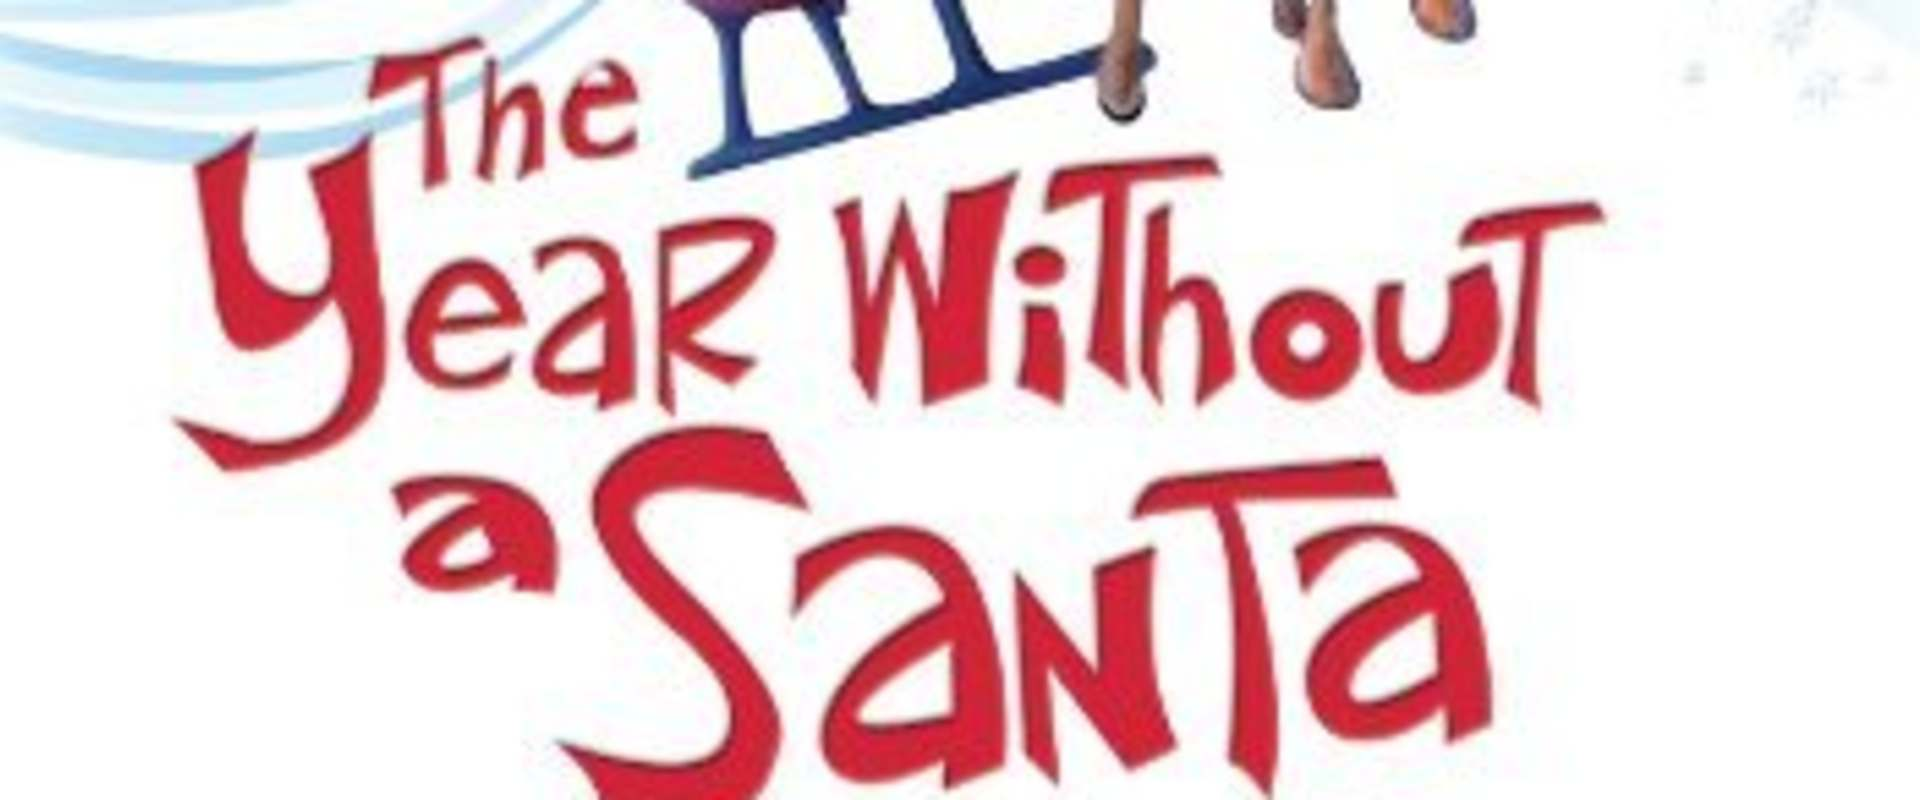 The Year Without a Santa Claus background 2